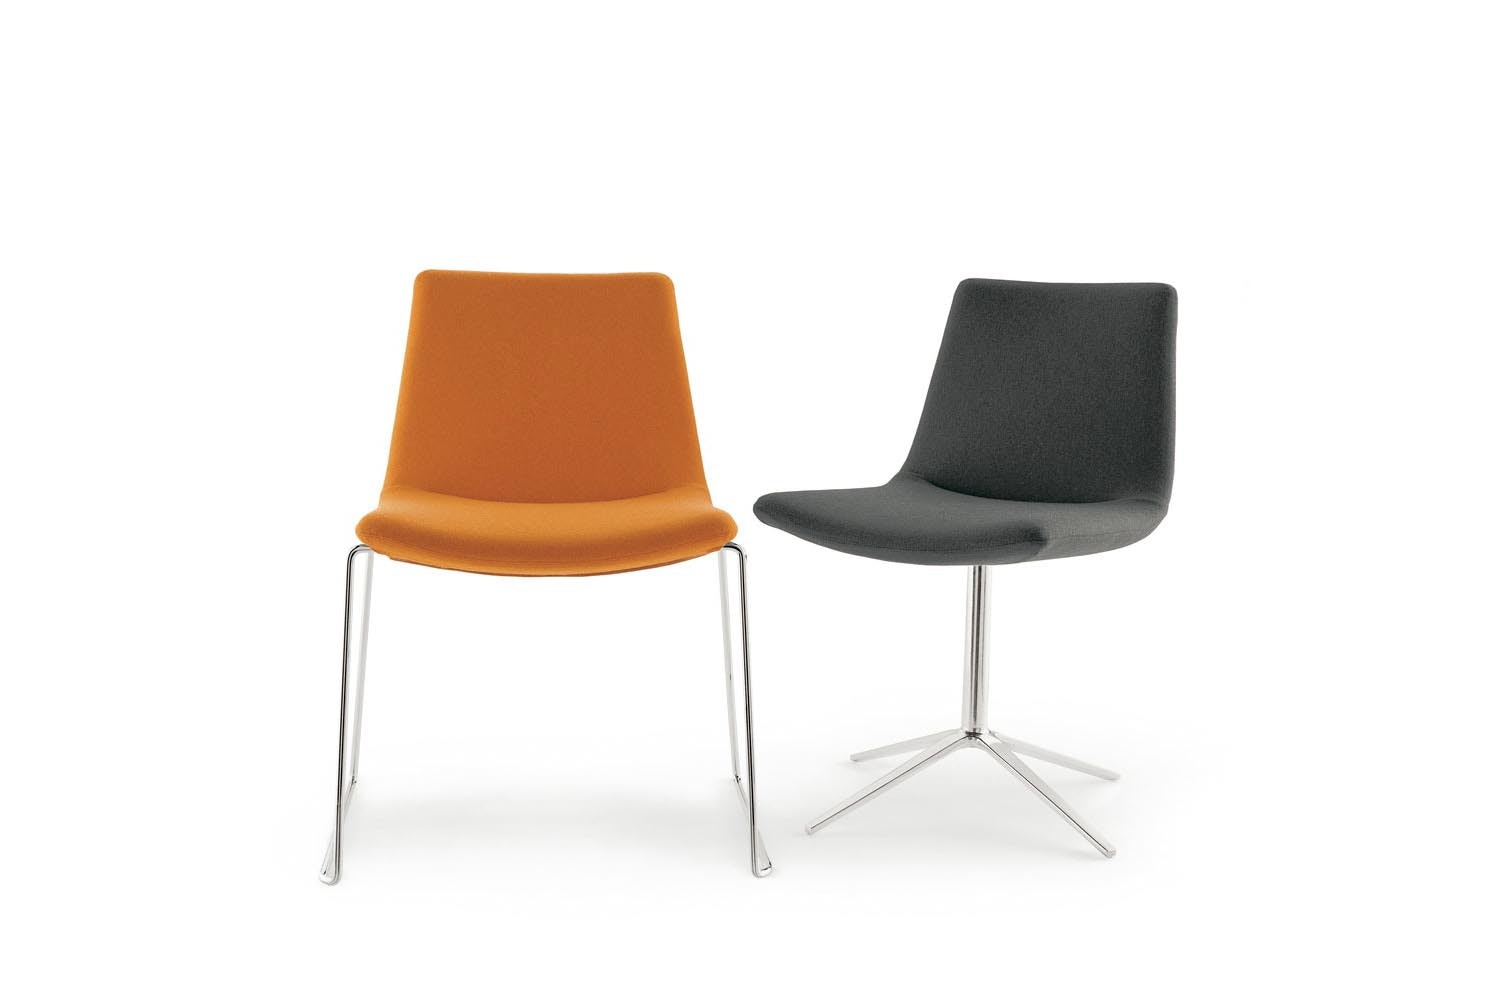 Cosmos Chair by Jeffrey Bernett for B&B Italia Project